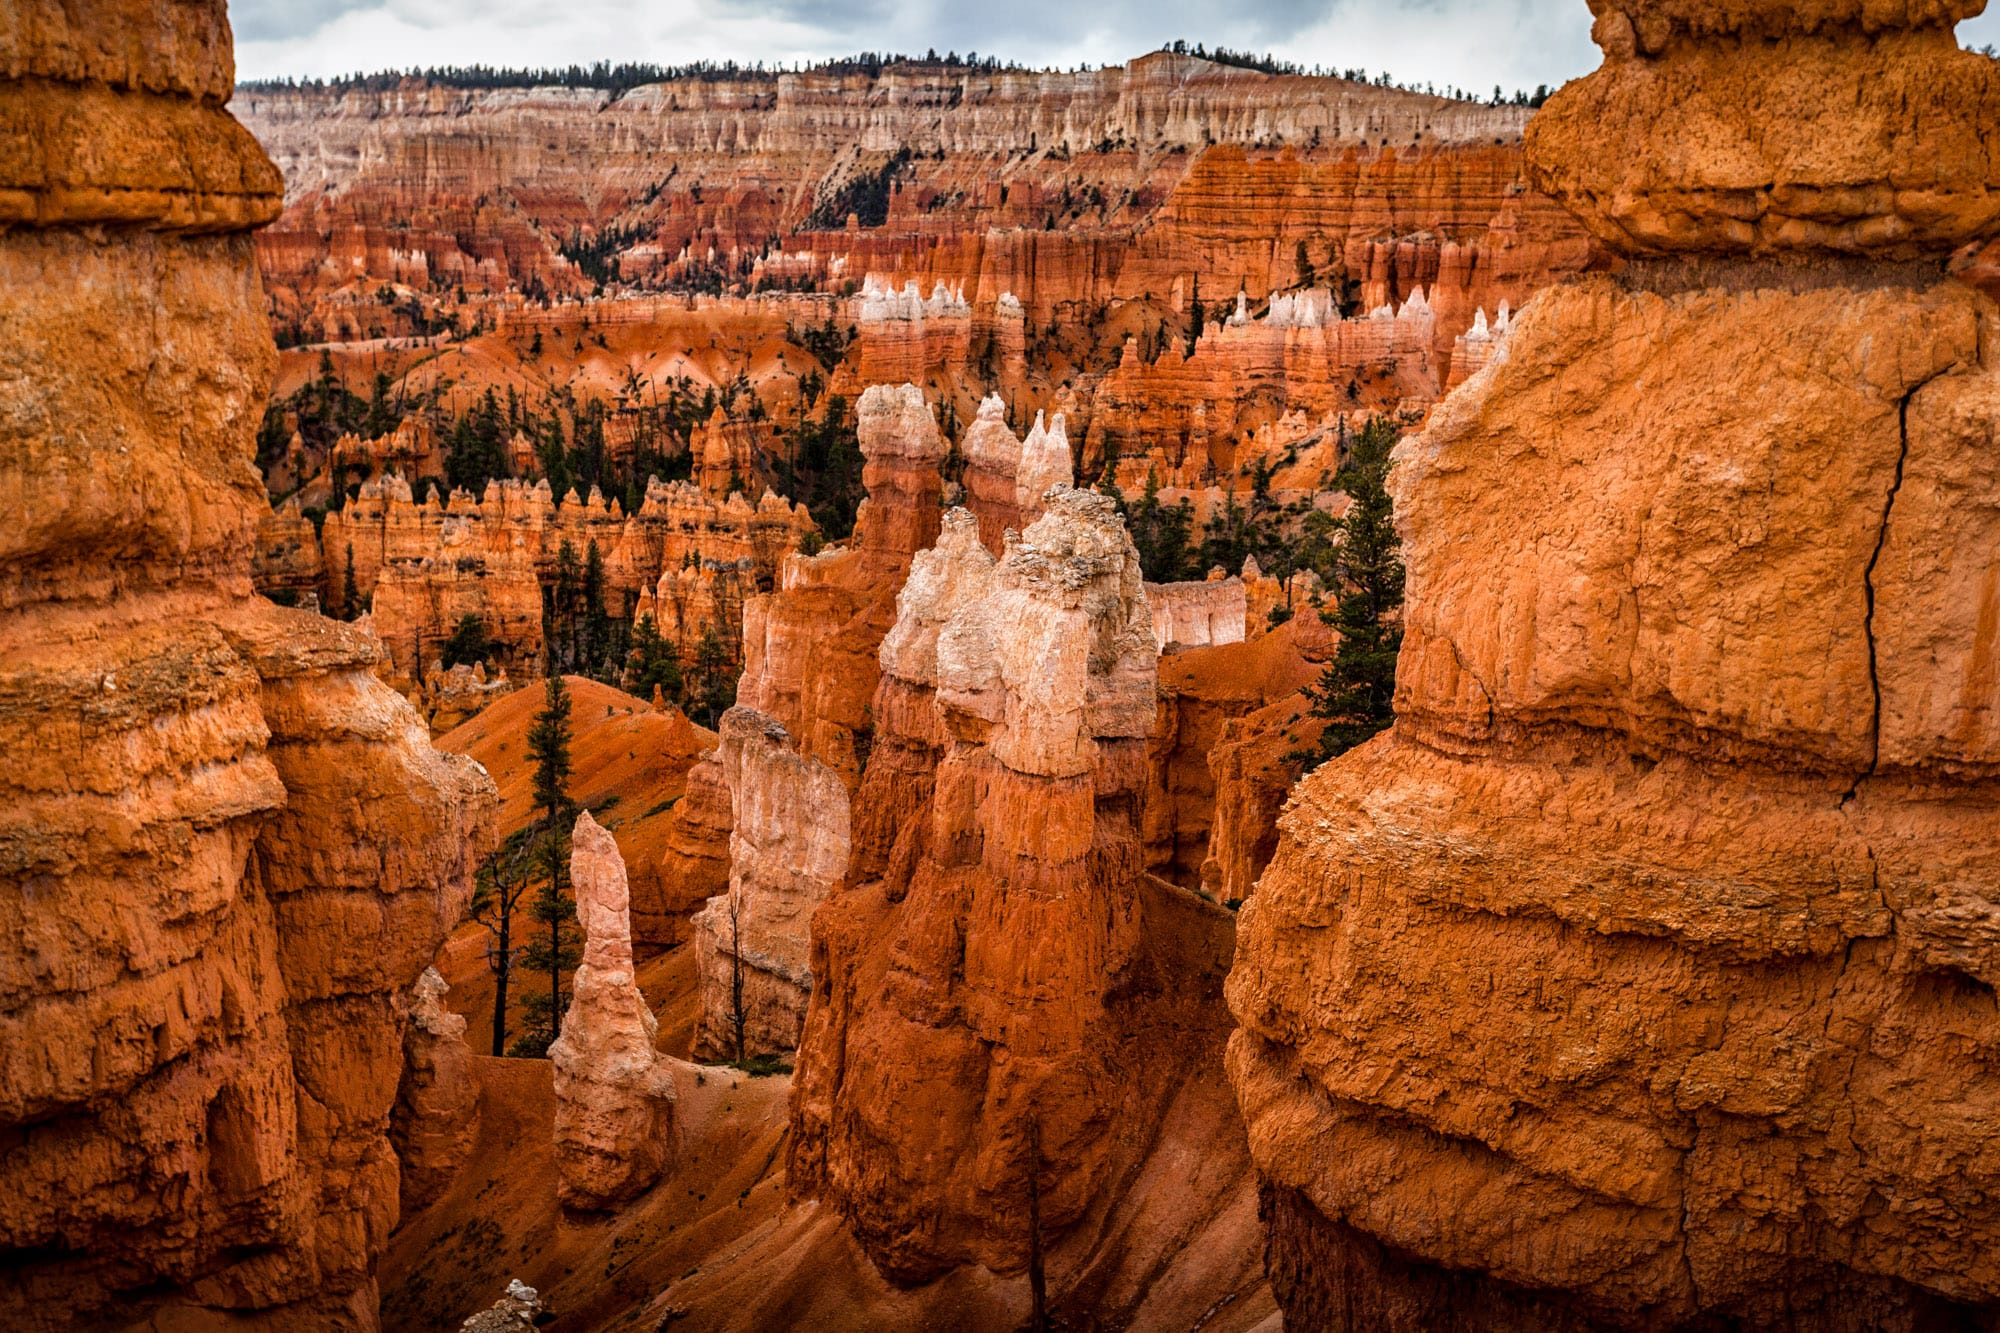 bryce canyon highlight of utah s national Highlights admire astonishing rock formations, impressive canyons and navajo sandstone cliffs in a landscape carved by time hike amid bryce canyon national park's remarkable geologic features, including hoodoos and spires.